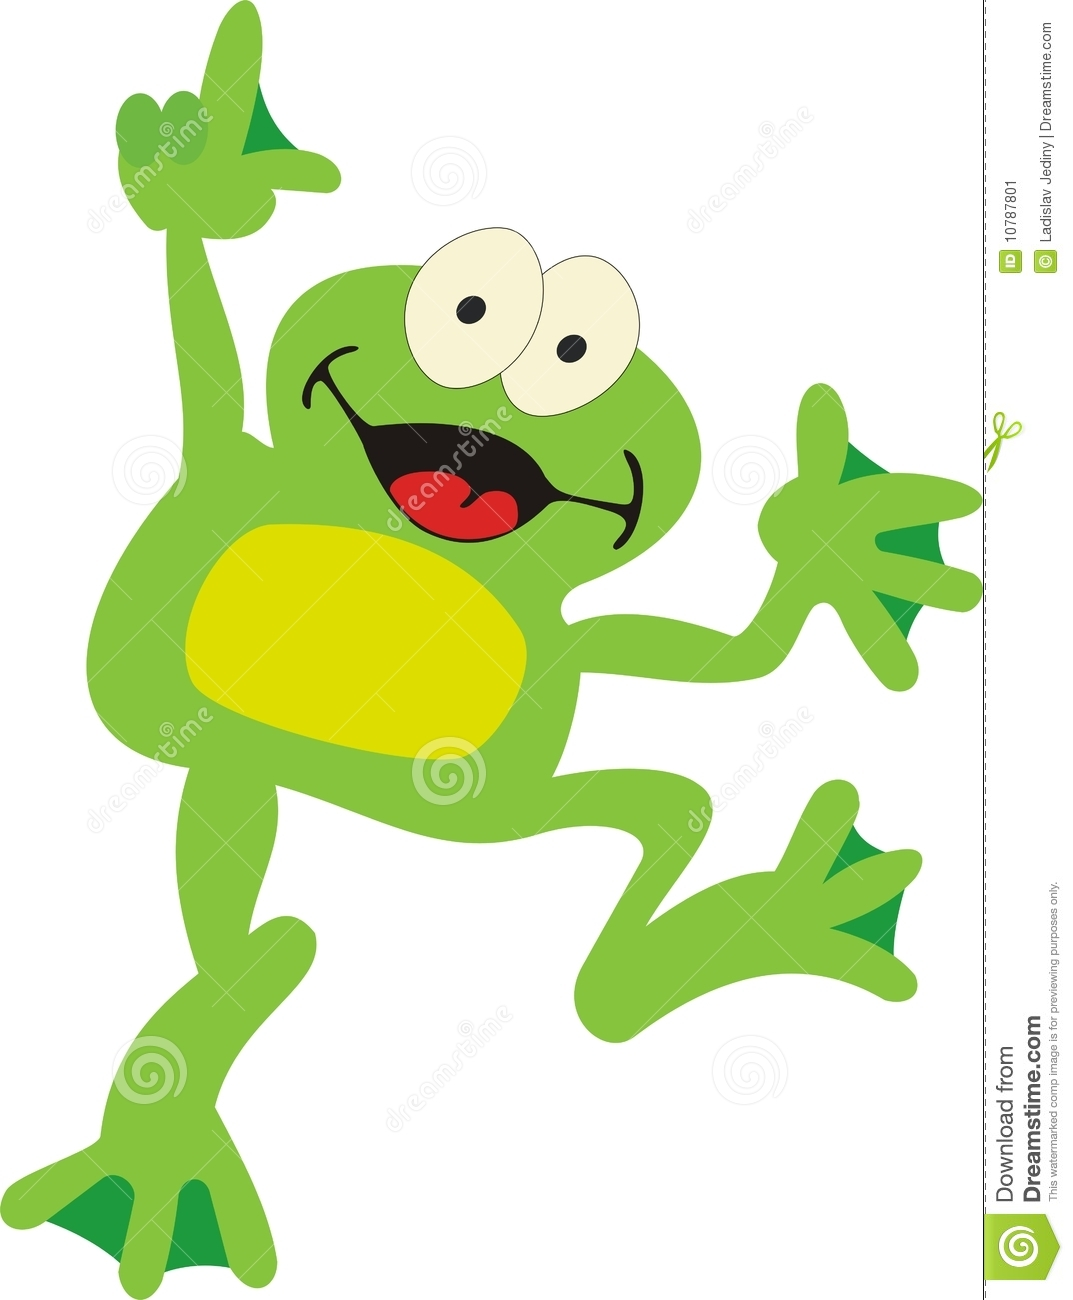 Frog Jumping Clipart Frog - smile st...